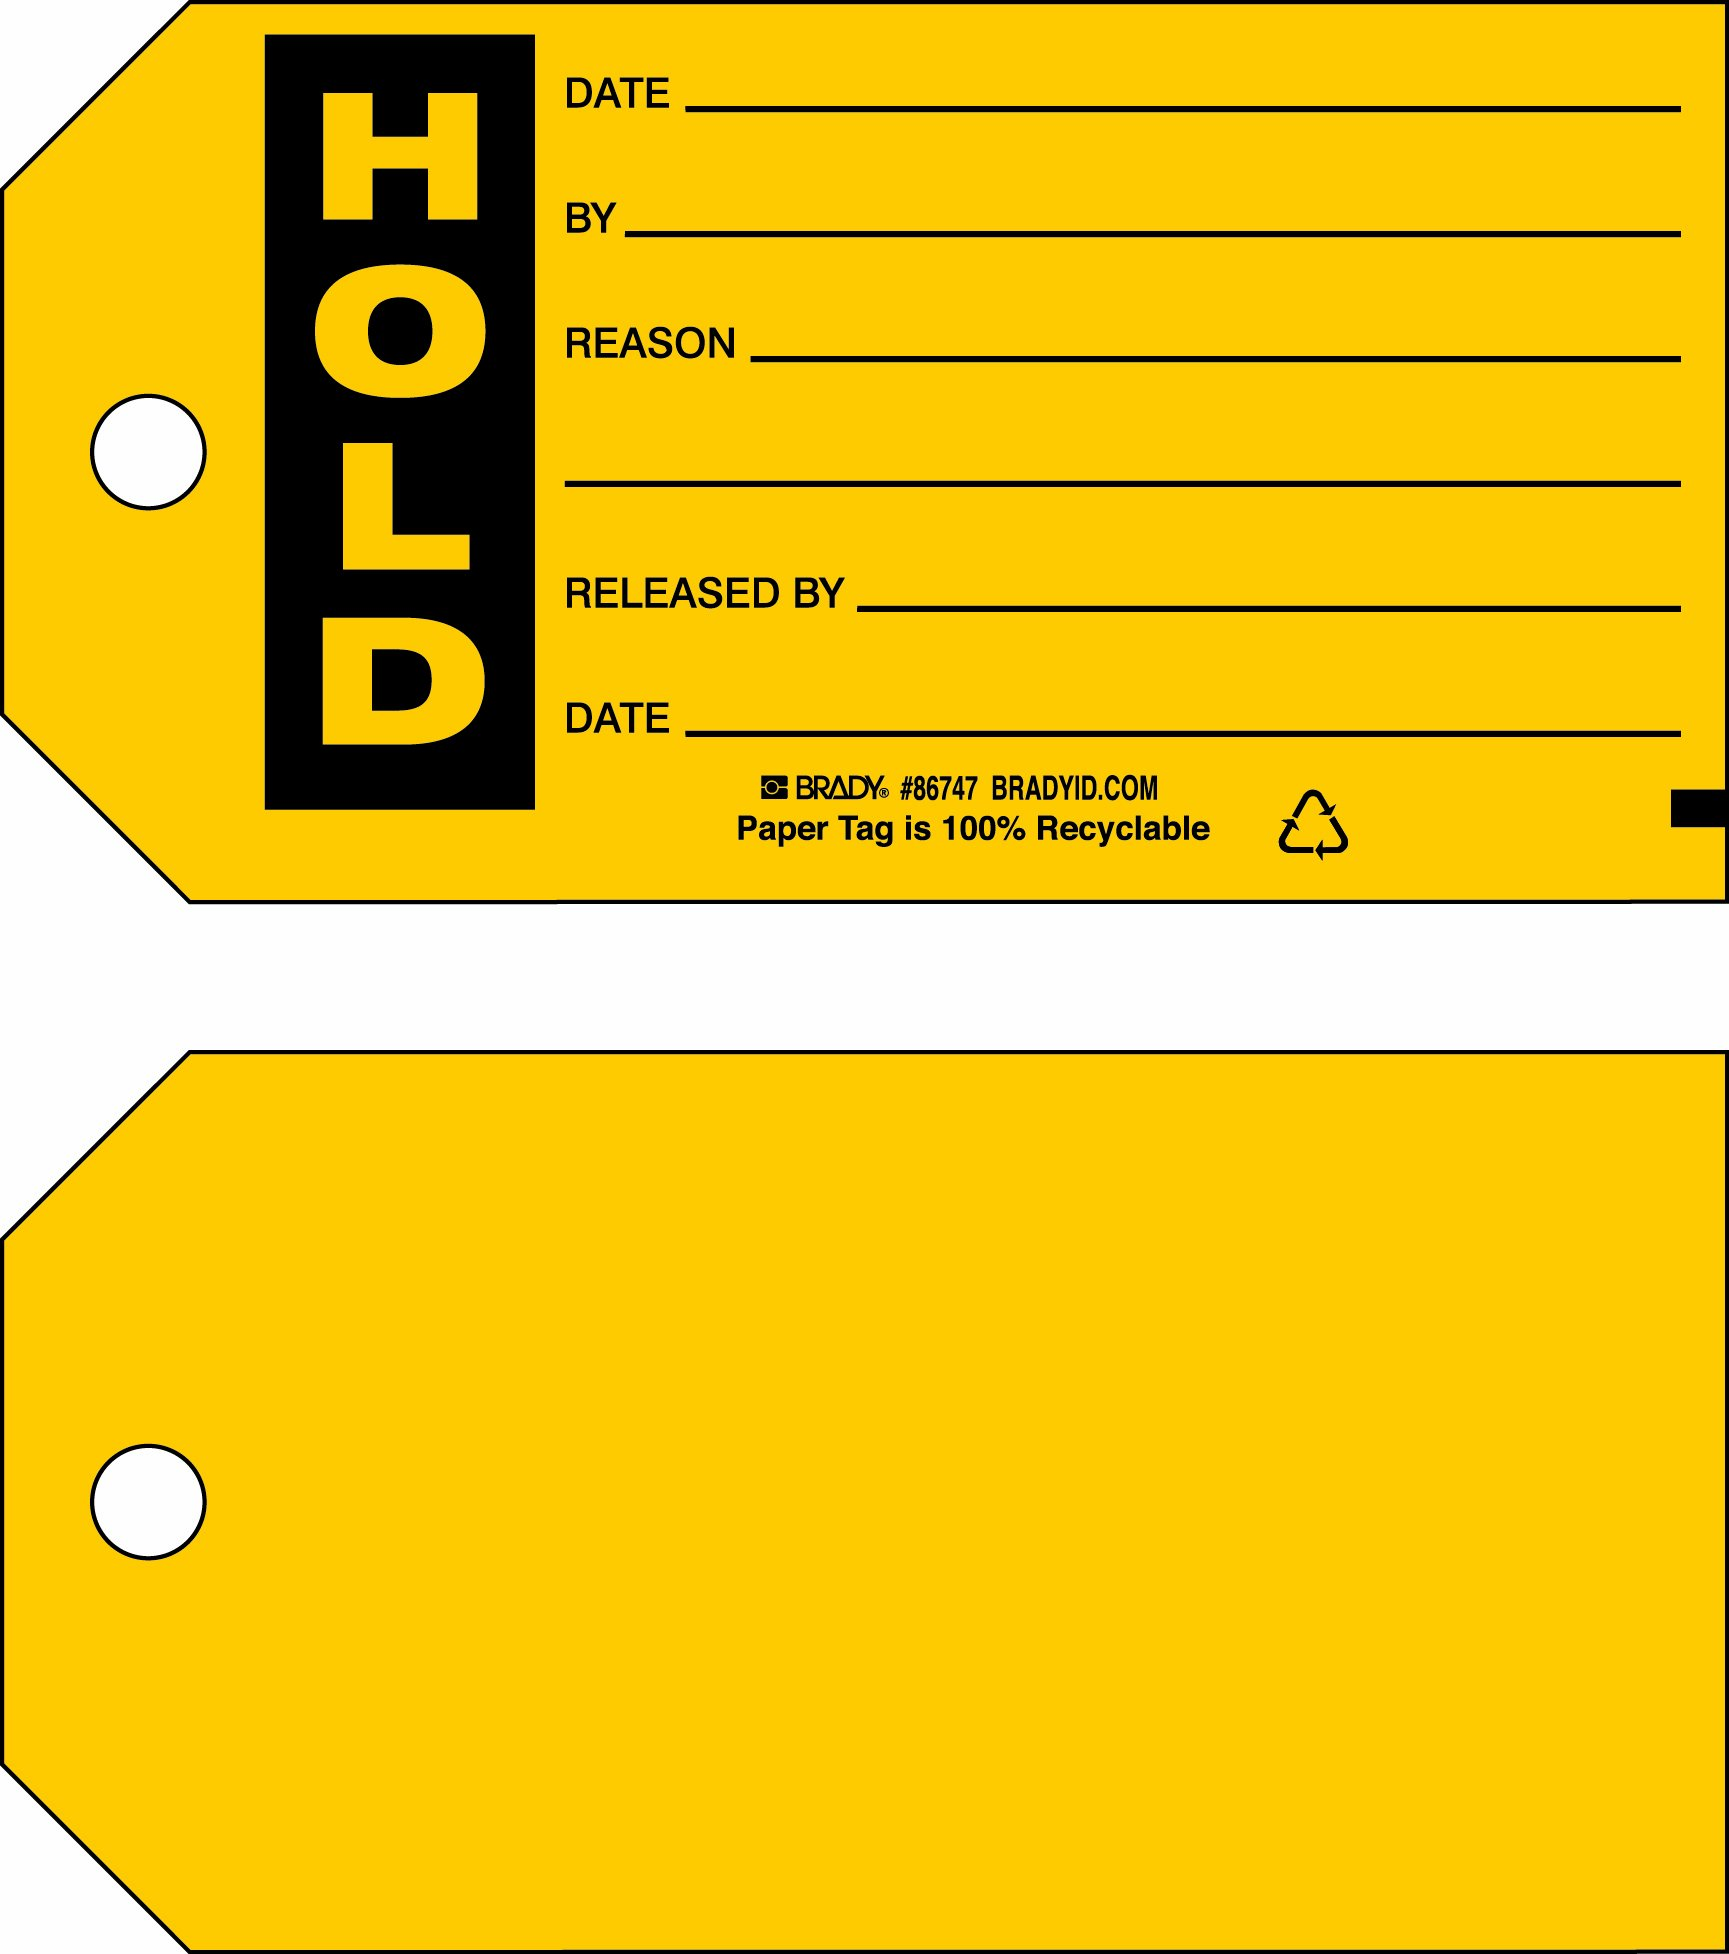 Brady  86747 3'' Height x 5 3/4'' Width, Cardstock (B-853), Black on Yellow Production Status Tags (100 Tags) by Brady